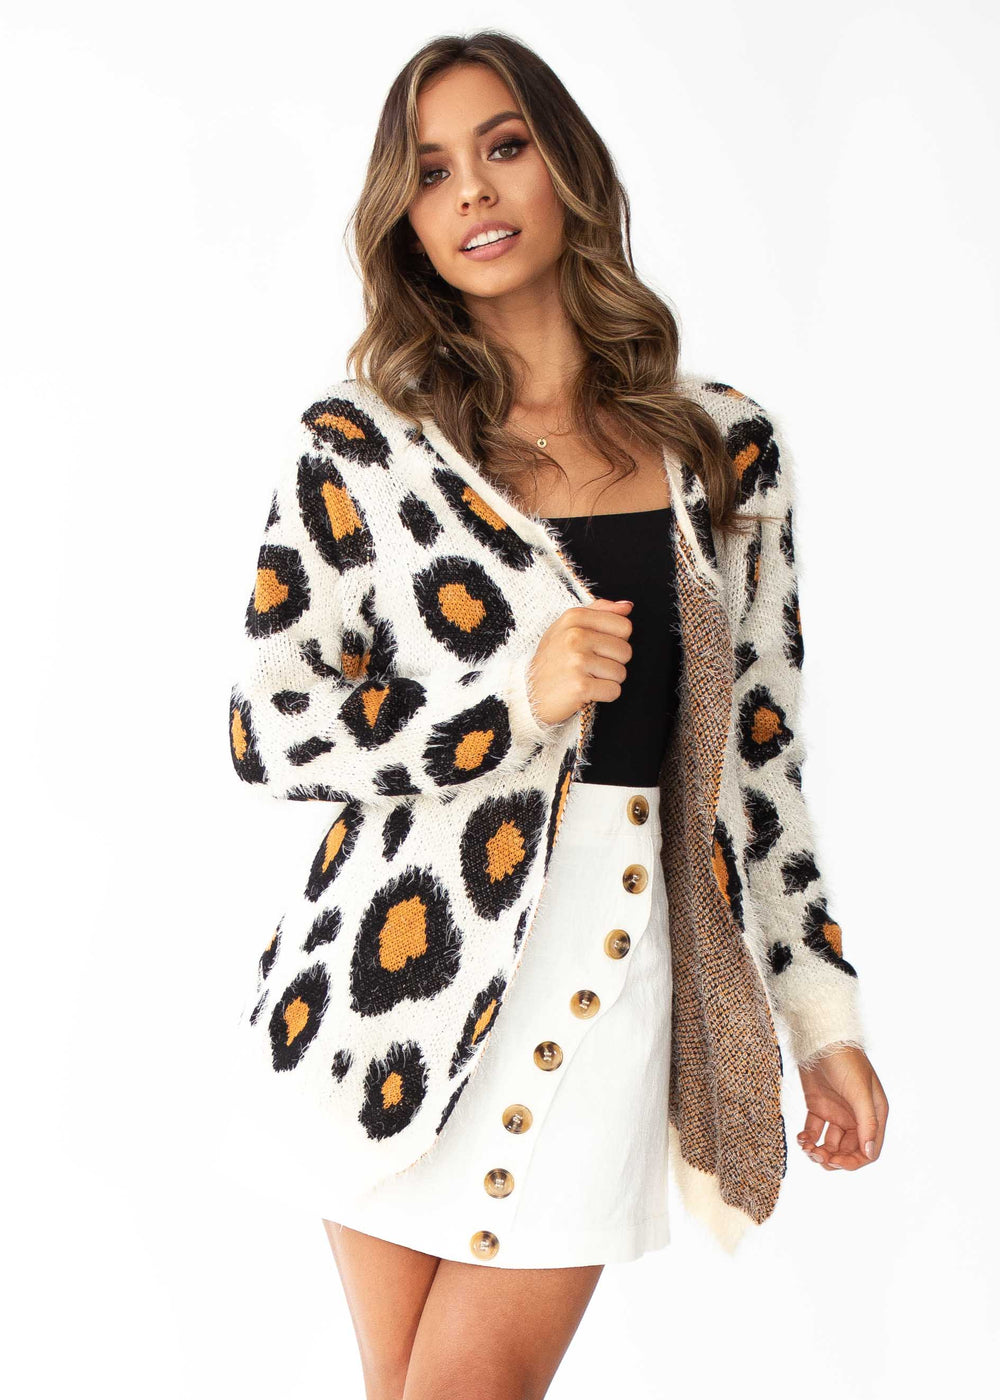 This Bliss Cardi - Beige Leopard